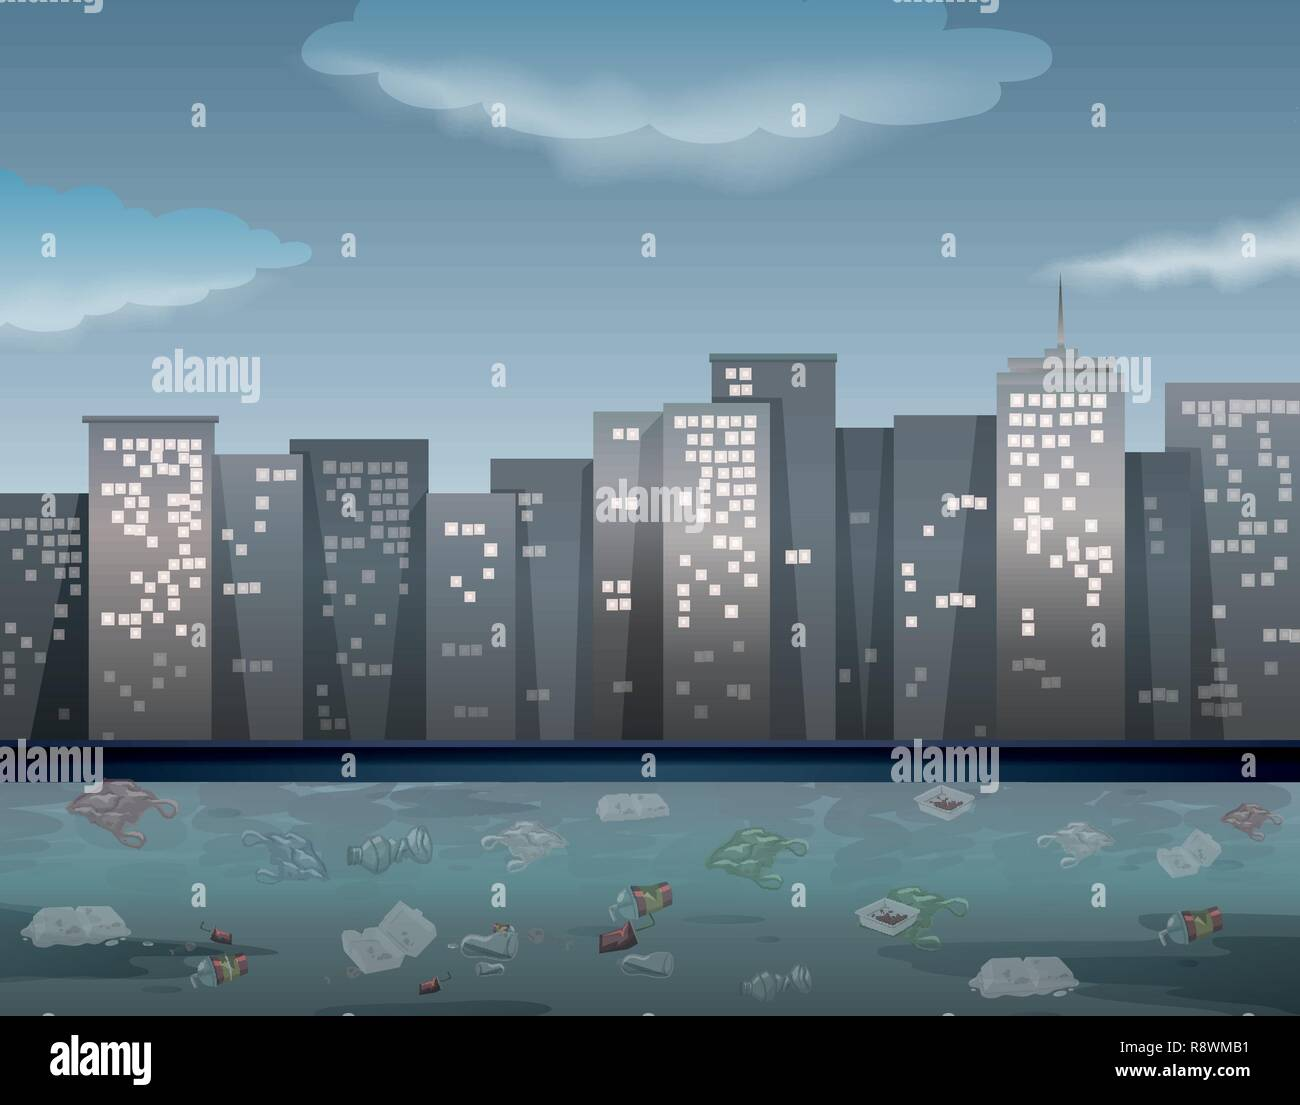 Water pollution in urban town illustration Stock Vector